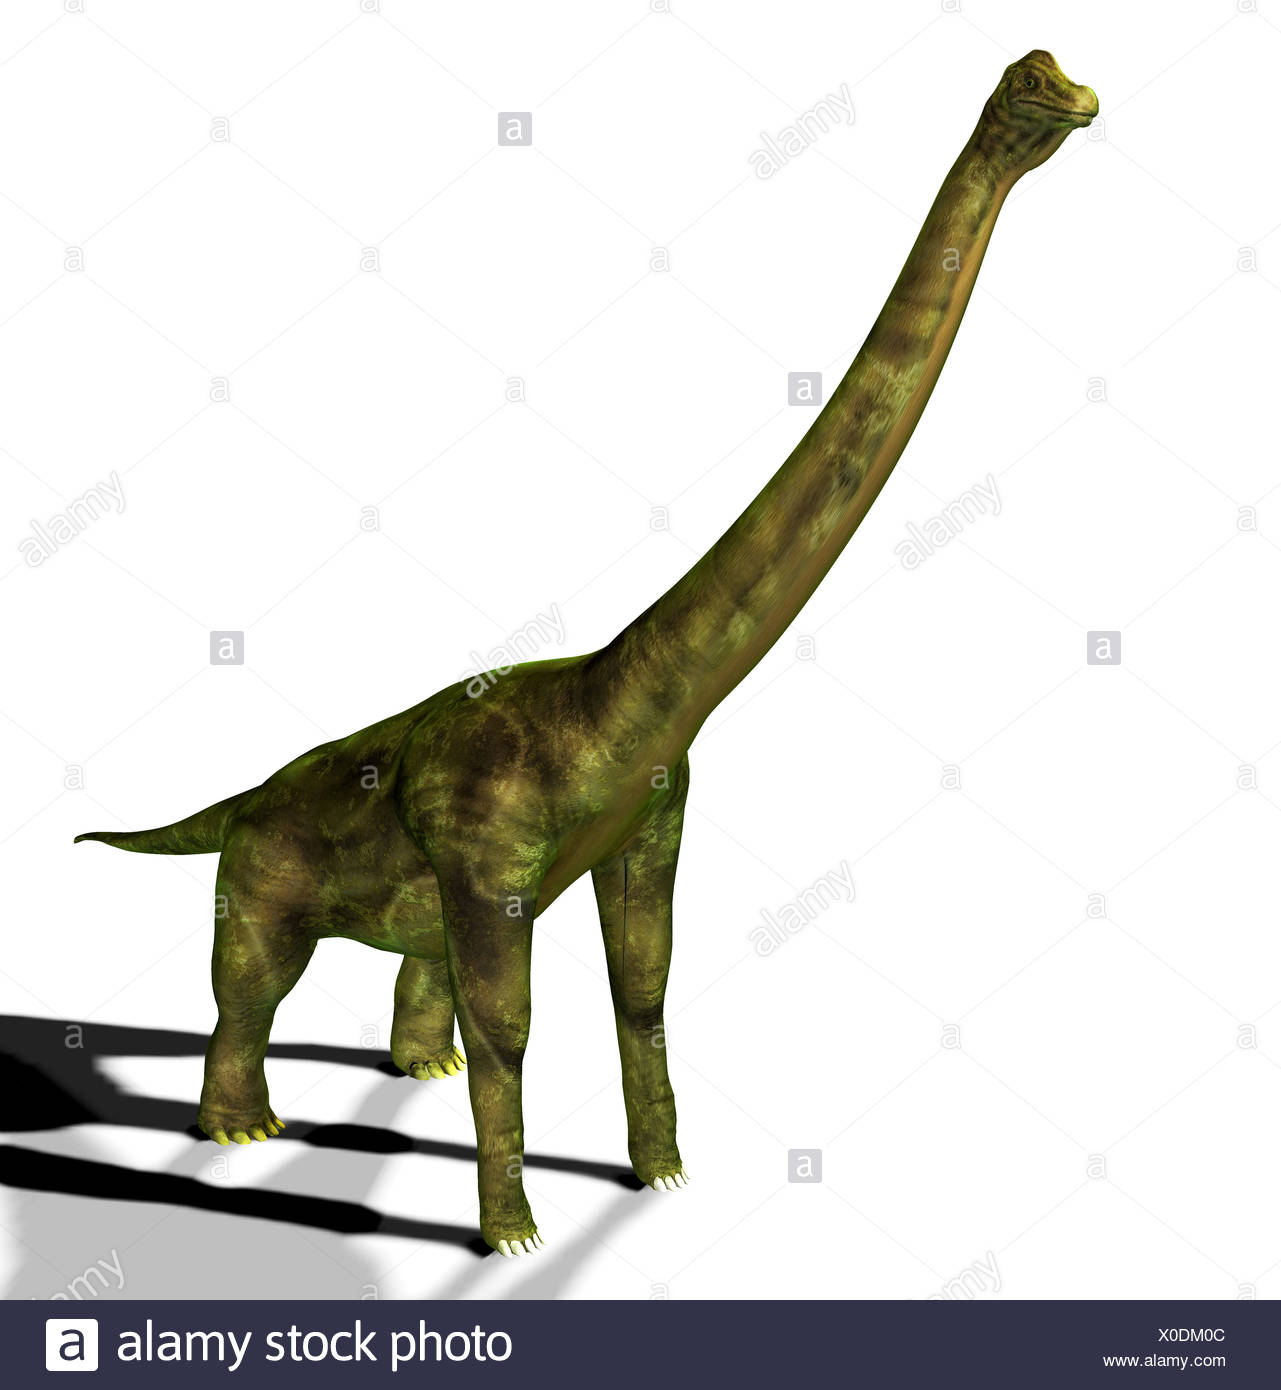 The brachiosaurus seemed also to arm lizard mentioned in the jurassic, had a weight of approx. 80 tons, a length of approx. 23 m - Stock Image